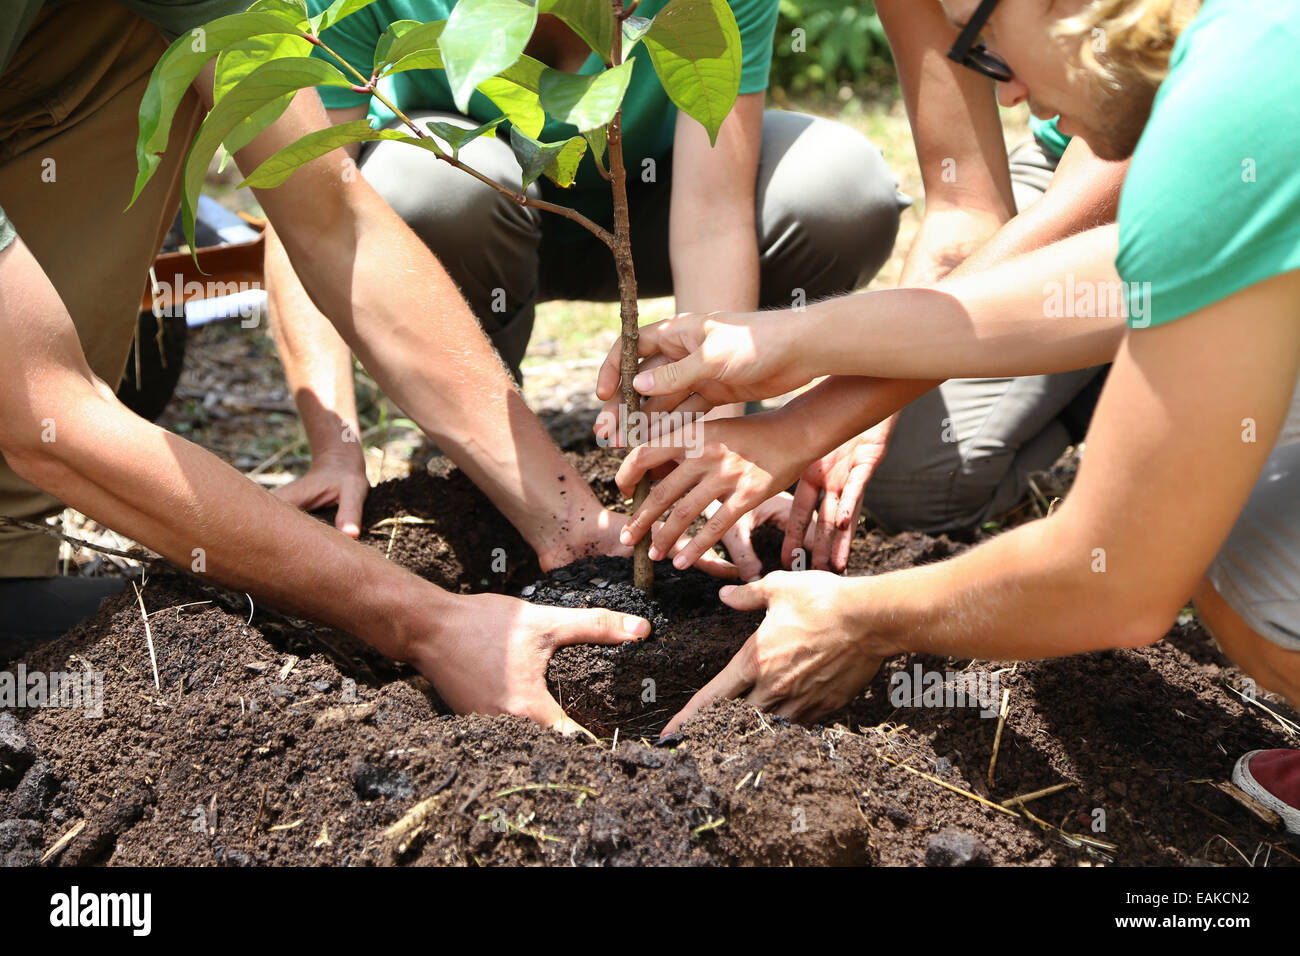 Les gens la plantation d arbre ensemble Photo Stock